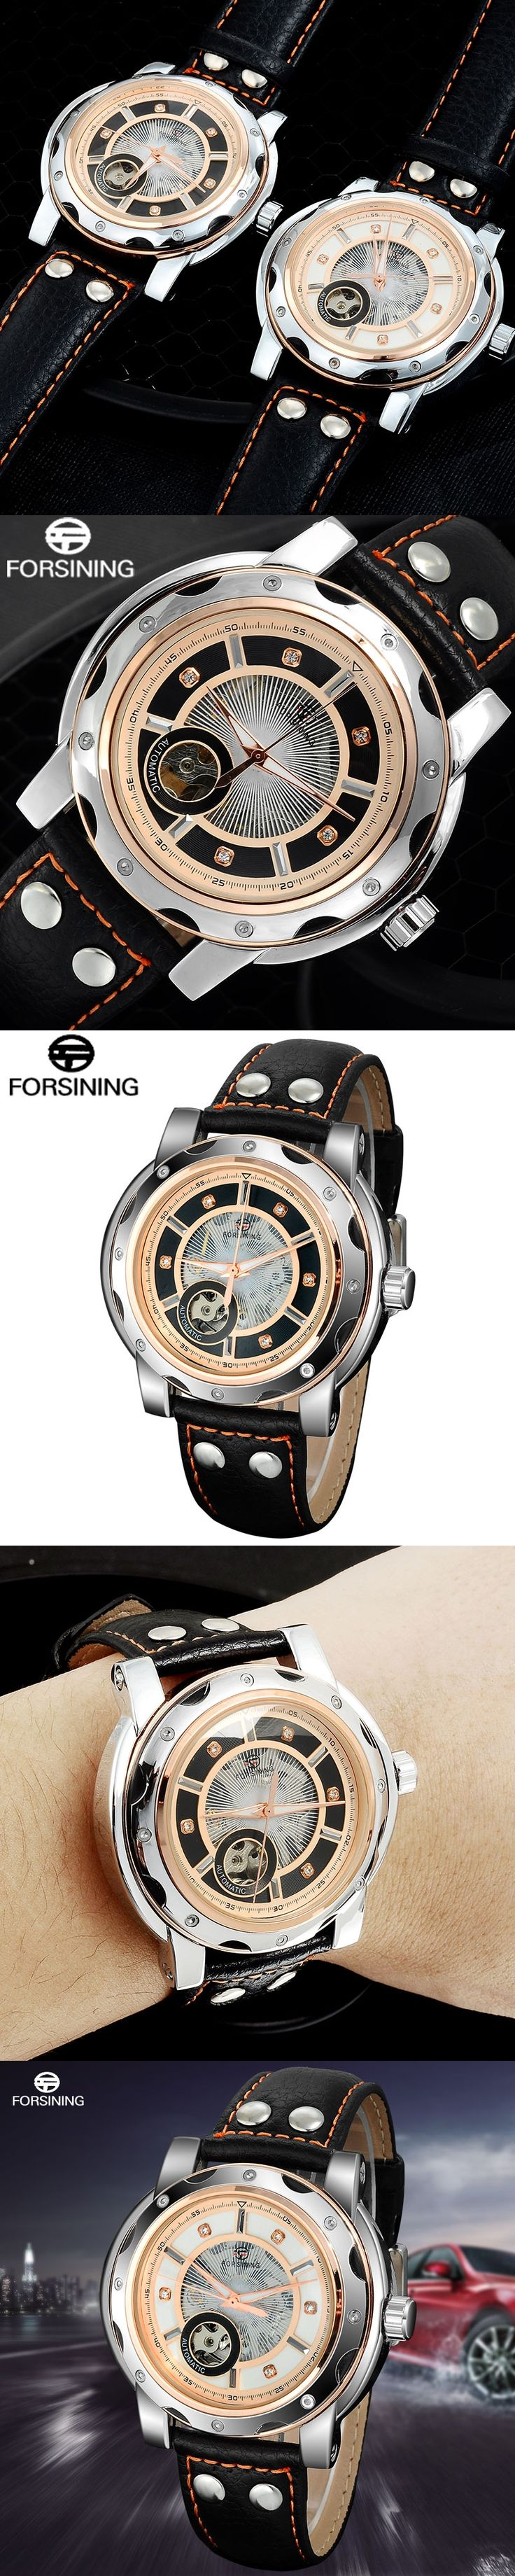 FORSINING brand men sport Watches male Skeleton Mechanical automatic Leather Wrist watch rose gold waterproof relogio masculino